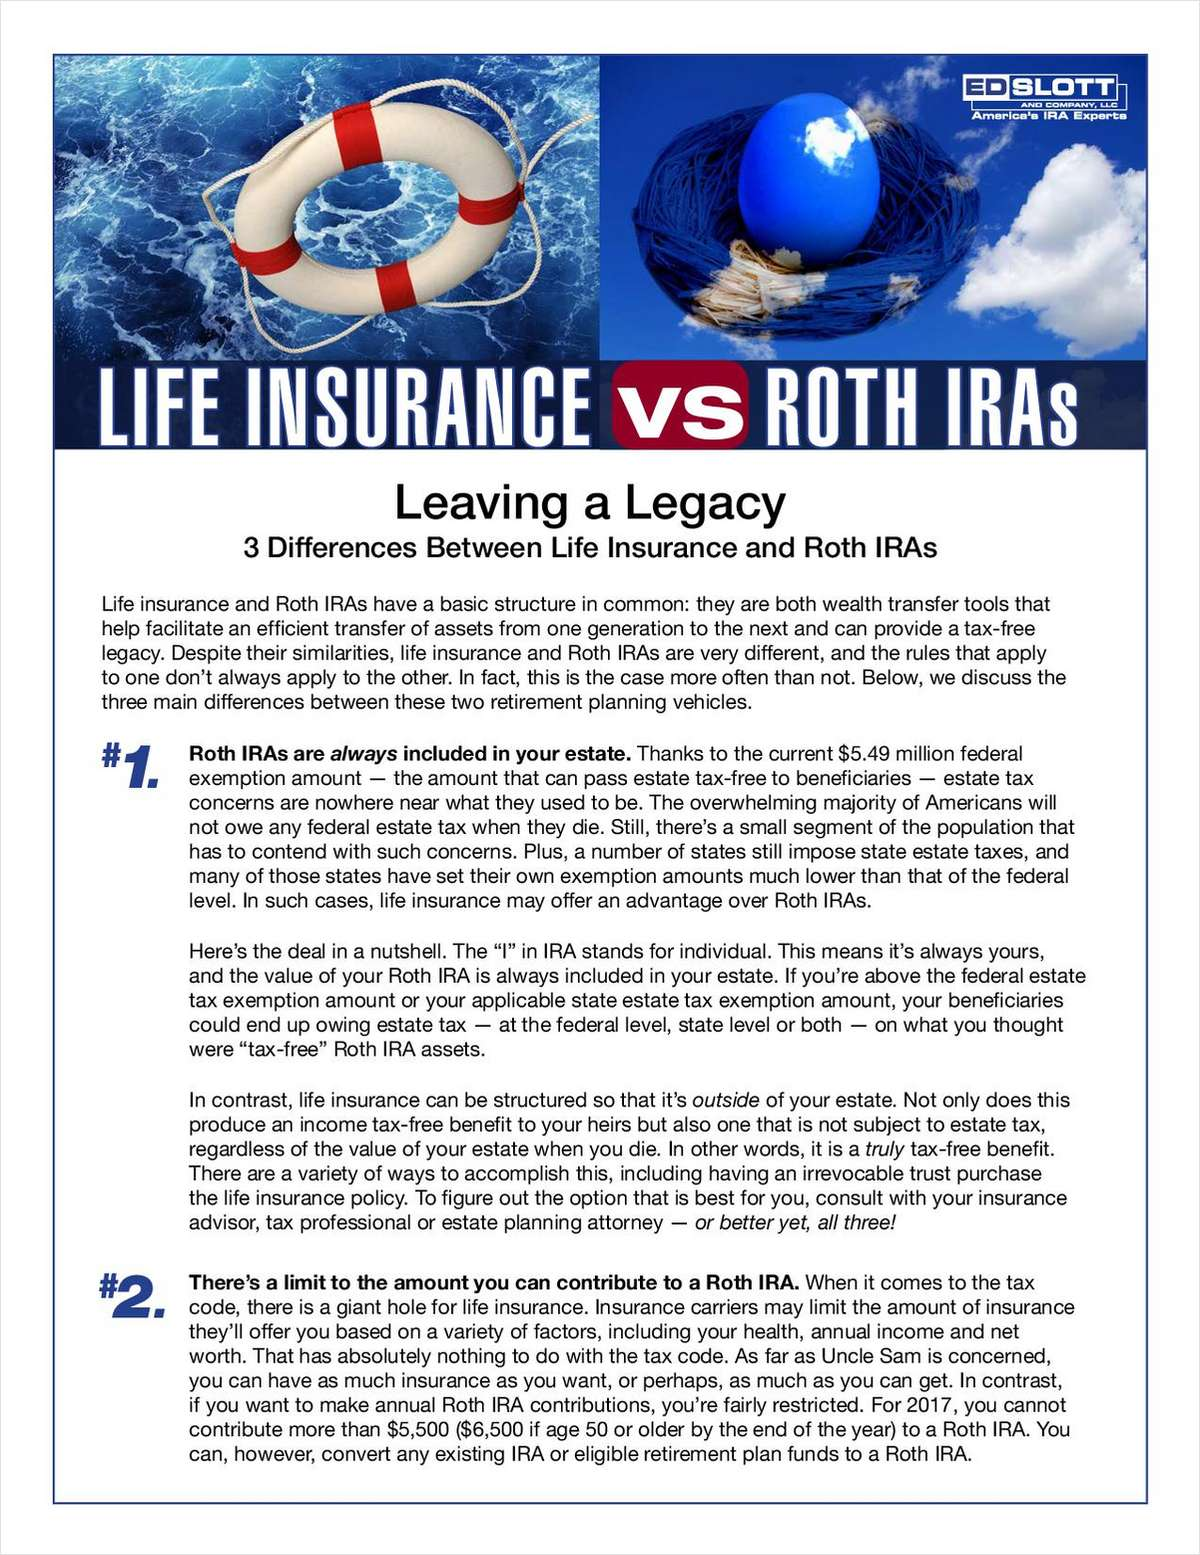 How to Teach Prospects the Difference Between Life Insurance and Roth IRAs